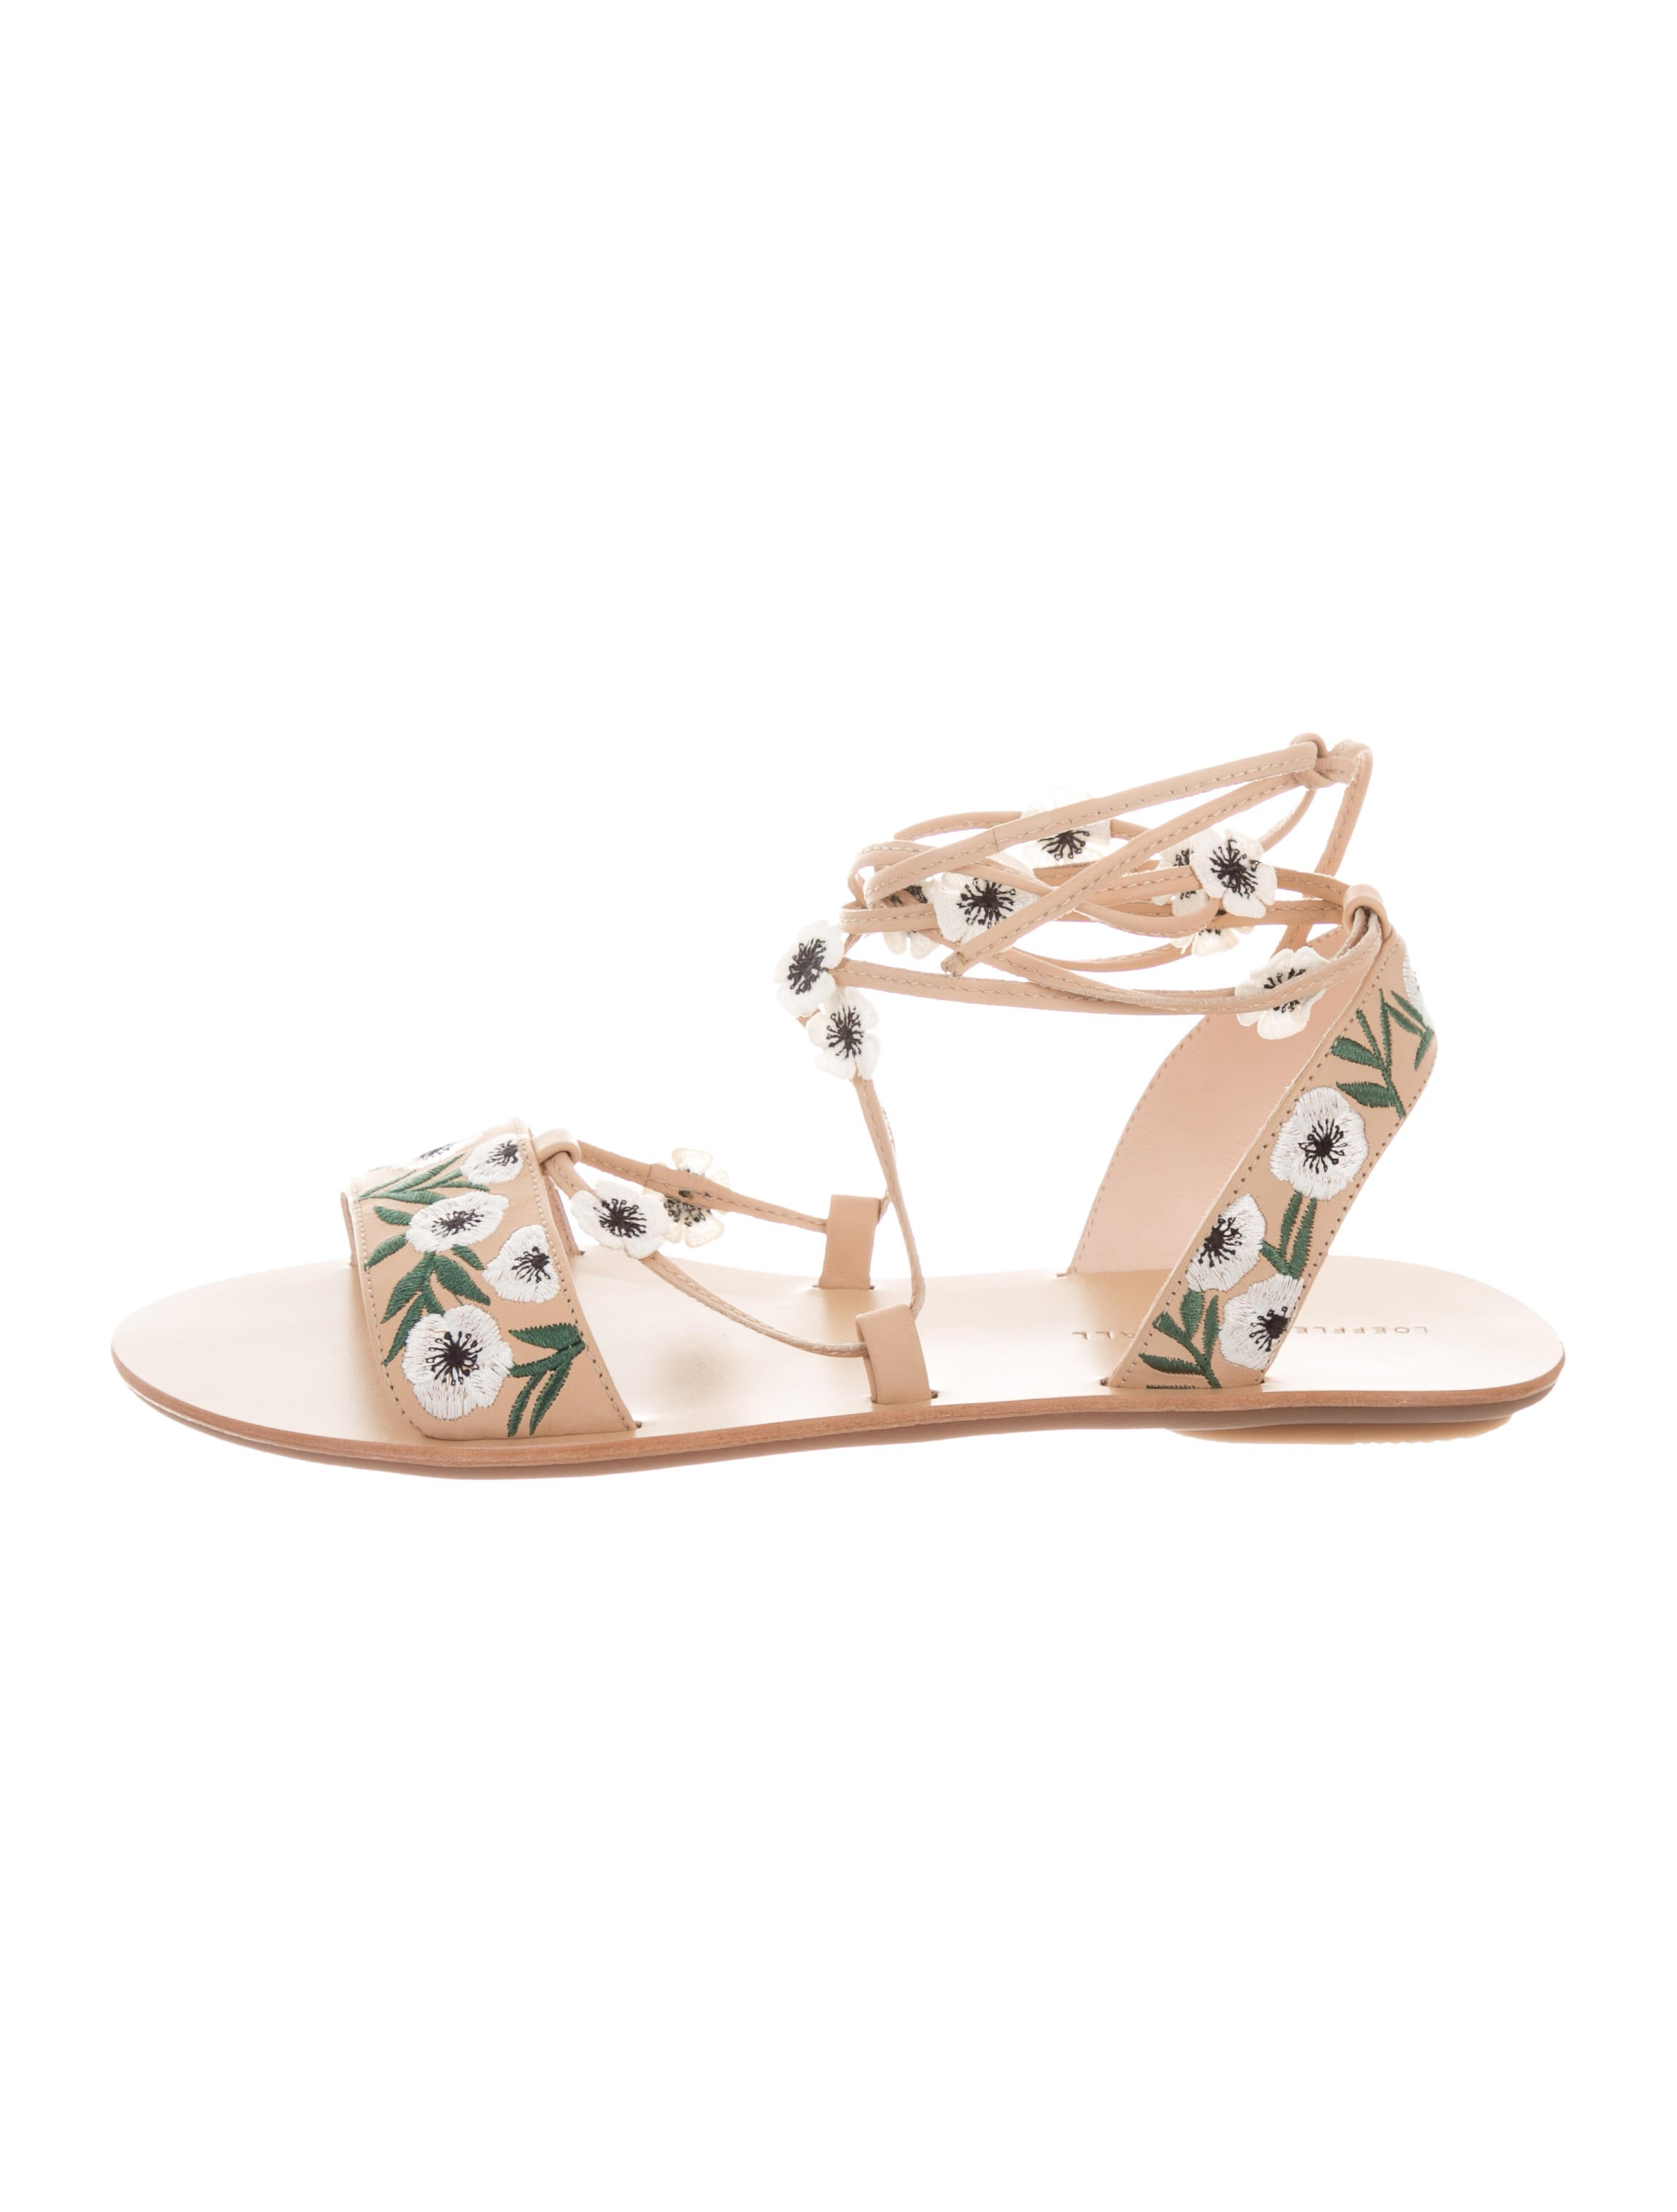 Loeffler Randall Fleura Embroidered Sandals w/ Tags wiki very cheap low cost sale online clearance finishline q0kjZSuRwZ